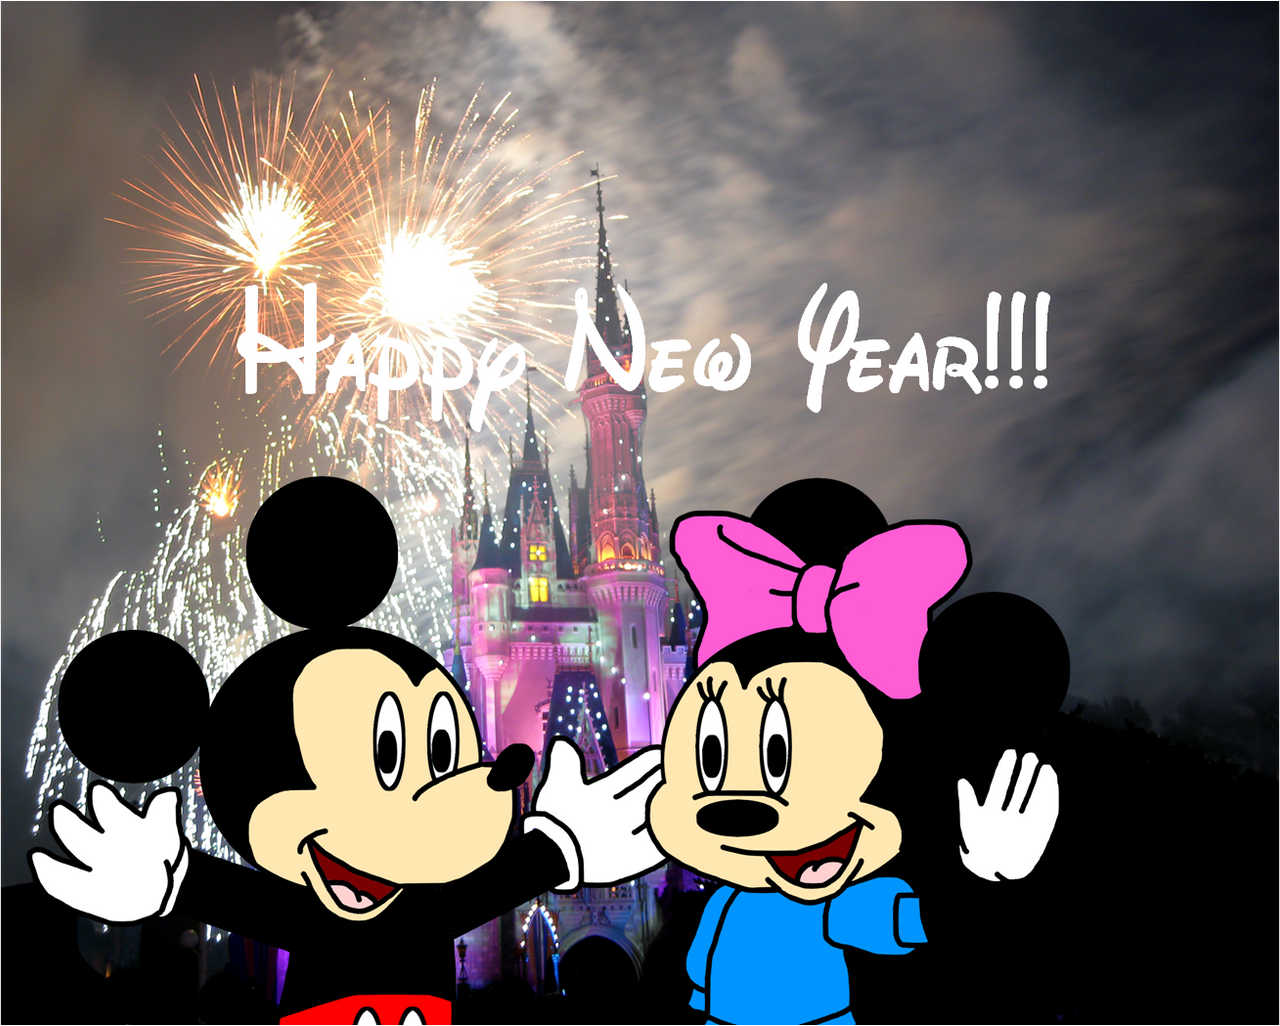 Felicidades Zubi y disneylanders - Página 3 Mickey_and_minnie_wish_happy_new_year_by_ozzyguy-d707rc0